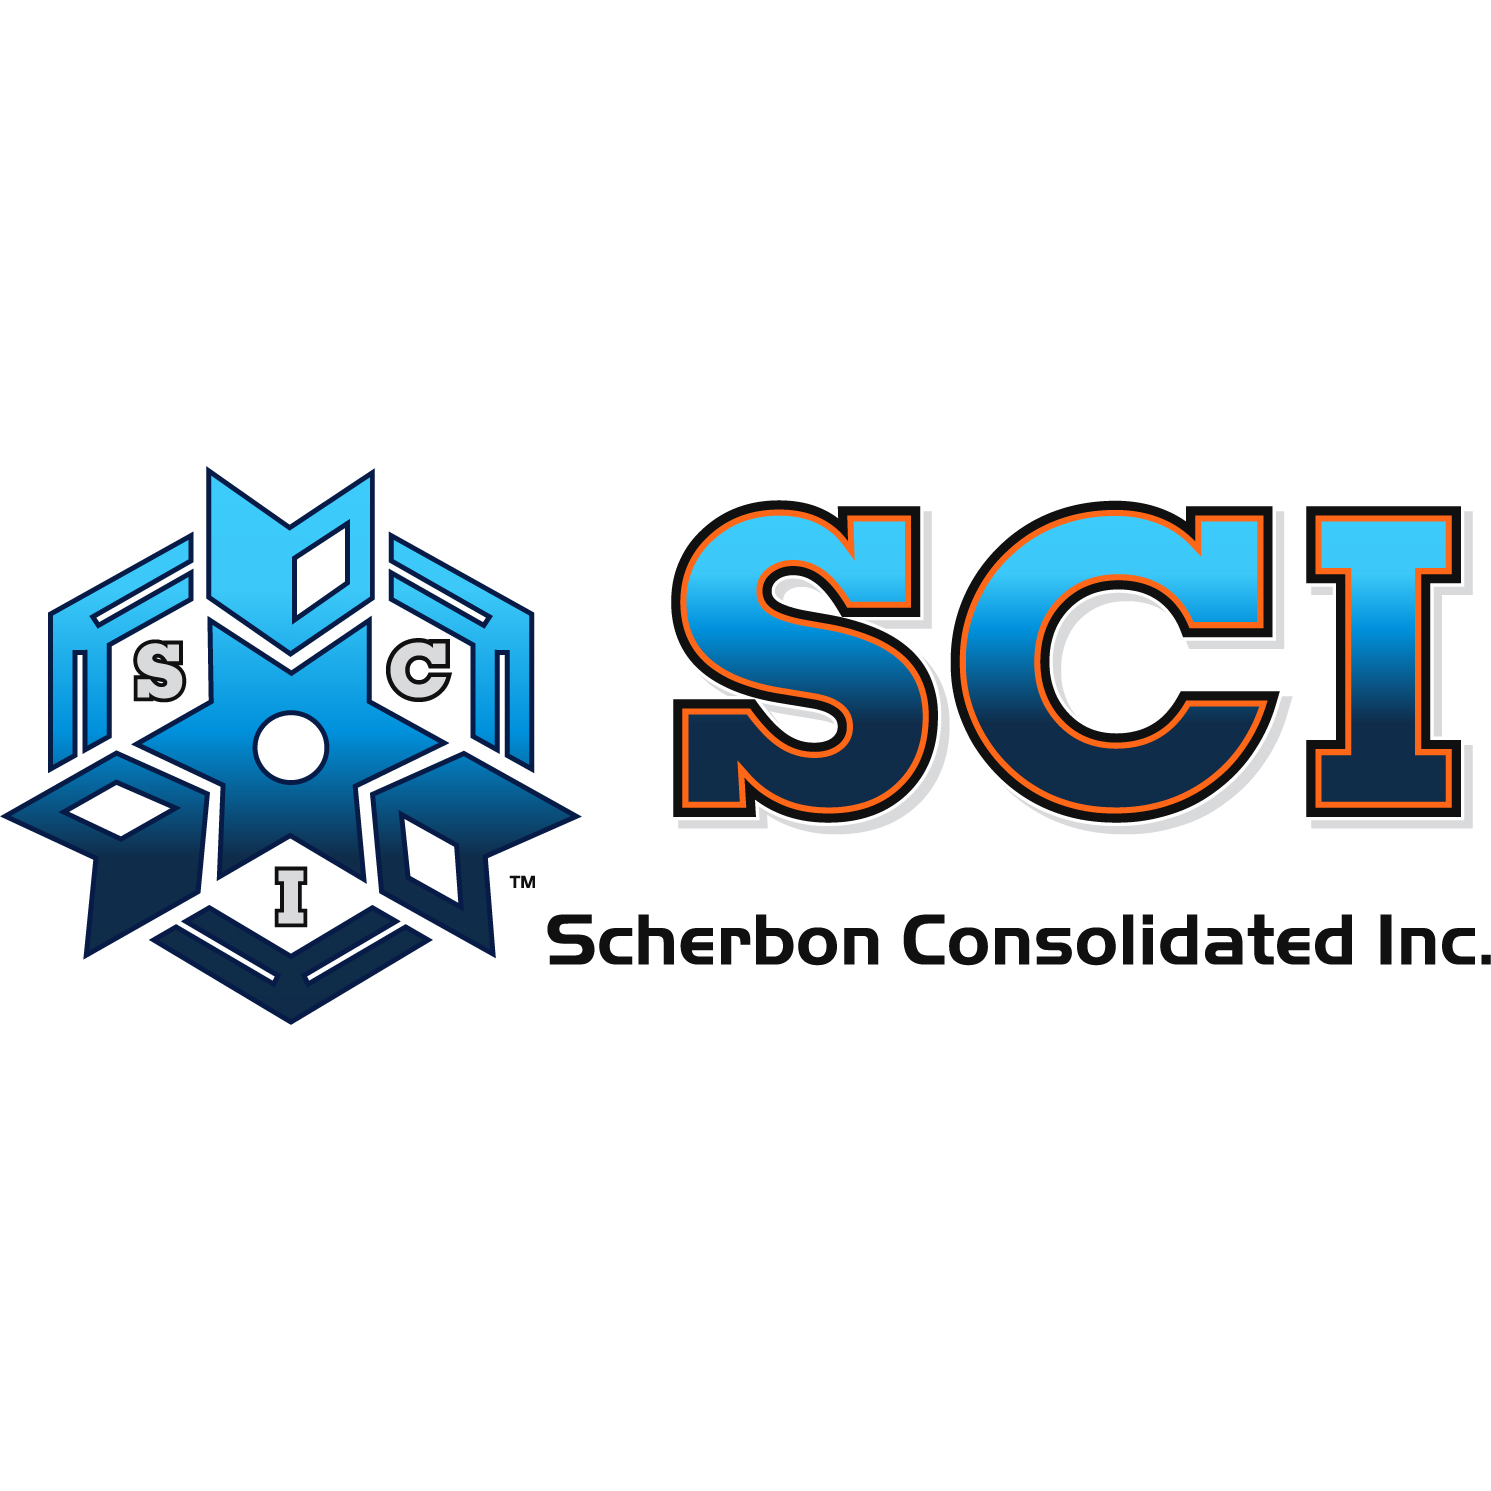 Scherbon Consolidated, Inc. image 0